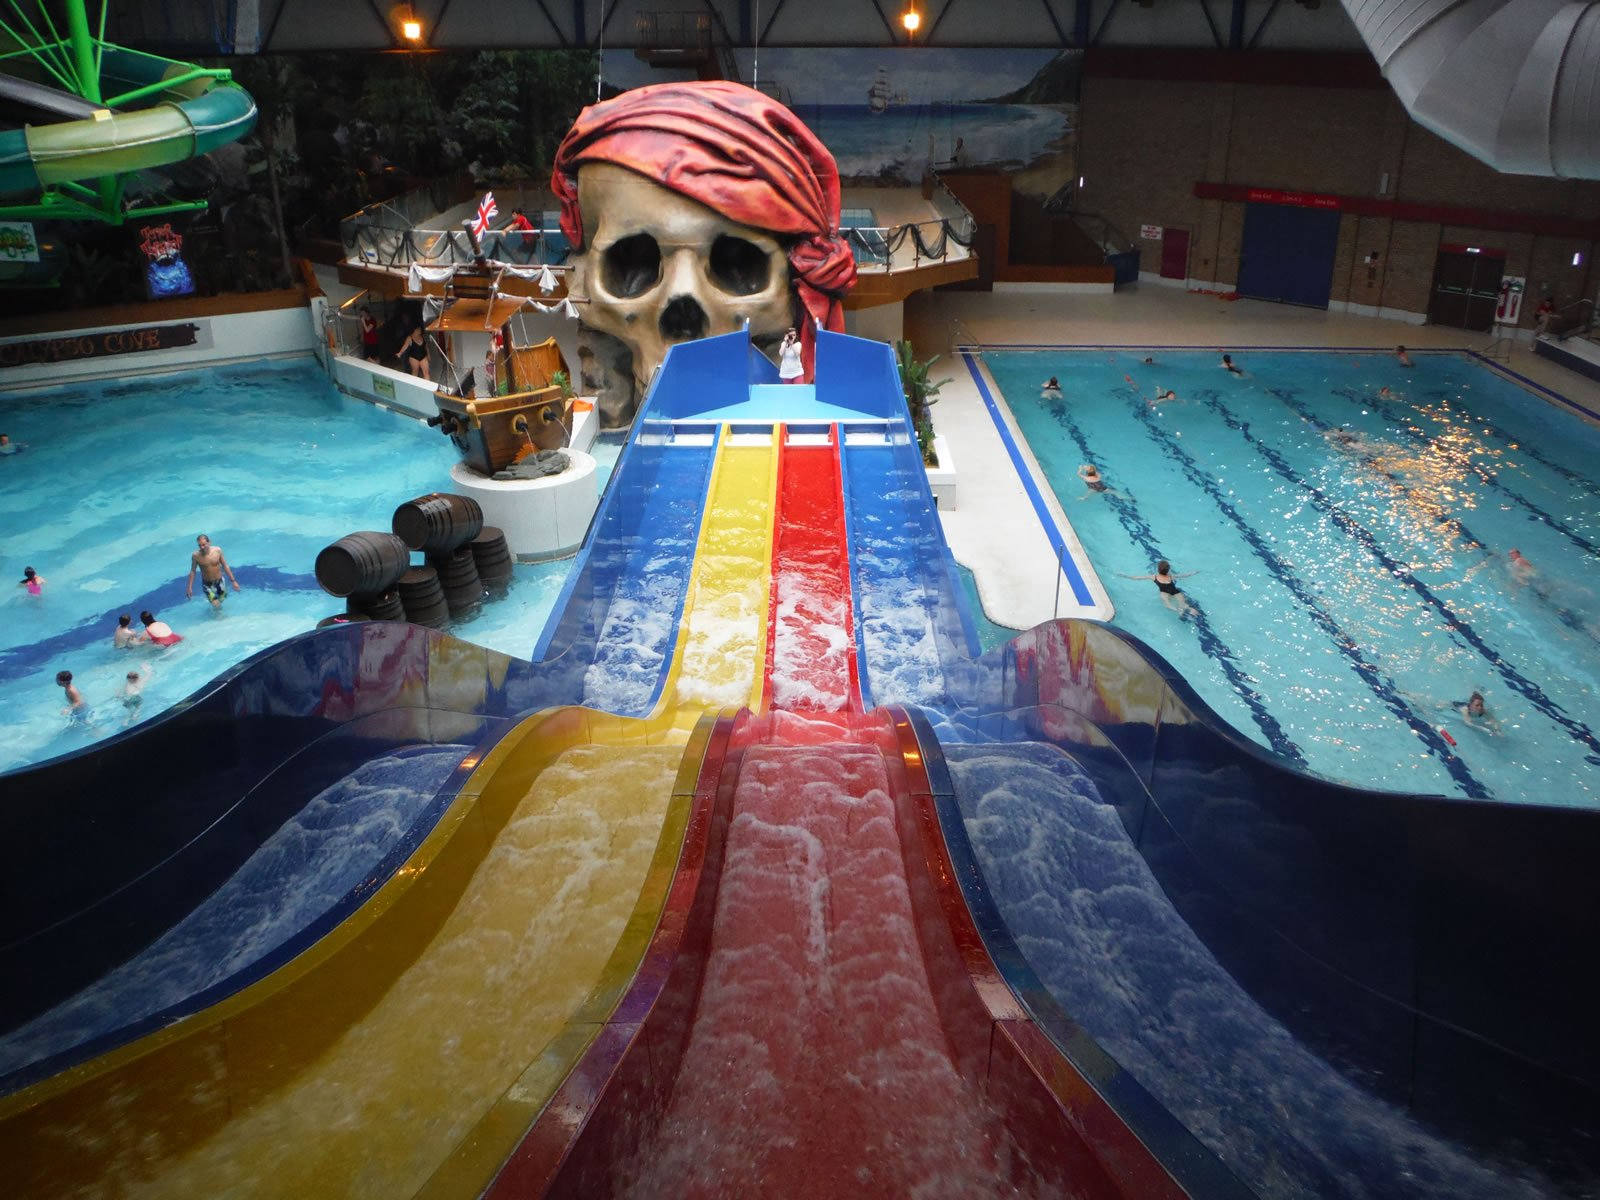 Calypso cove waterpark sports activity barnsley - Swimming pools in south yorkshire ...